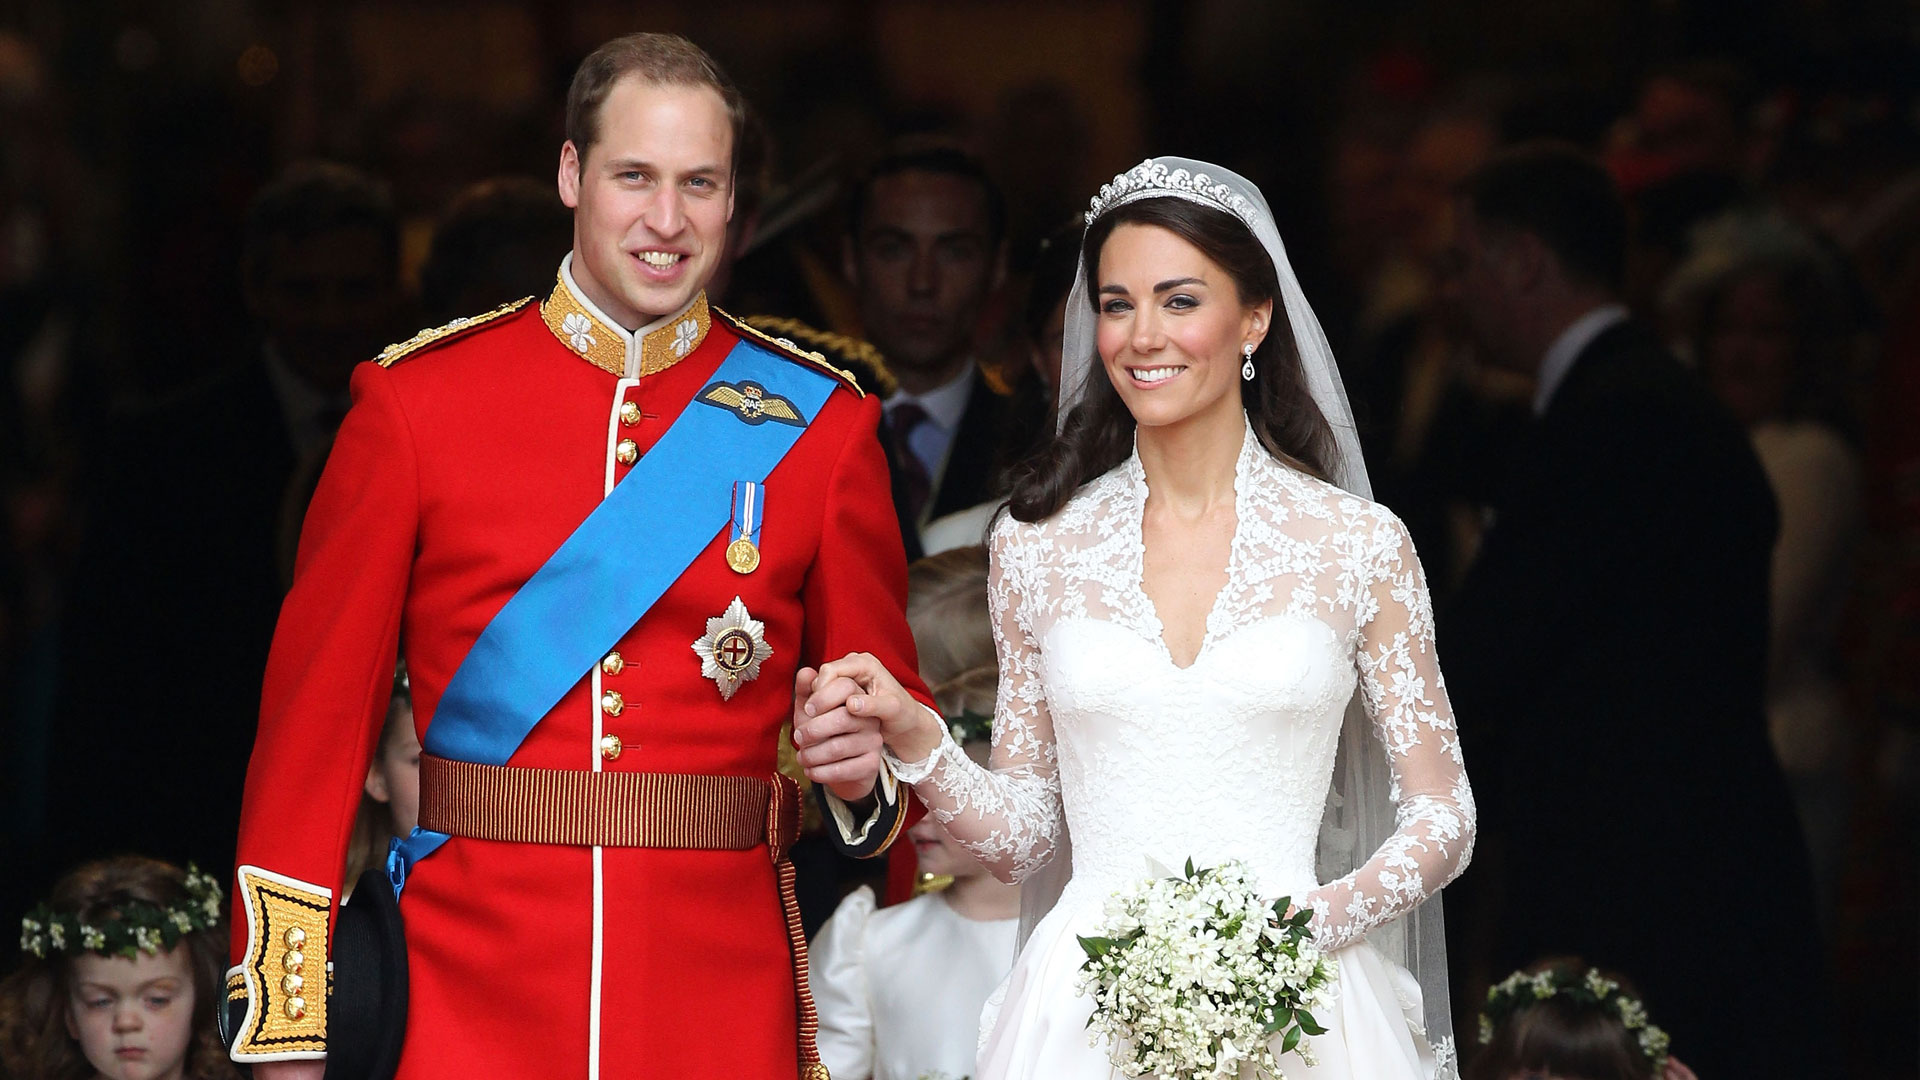 kate-middleton-principe-william-boda-real_0